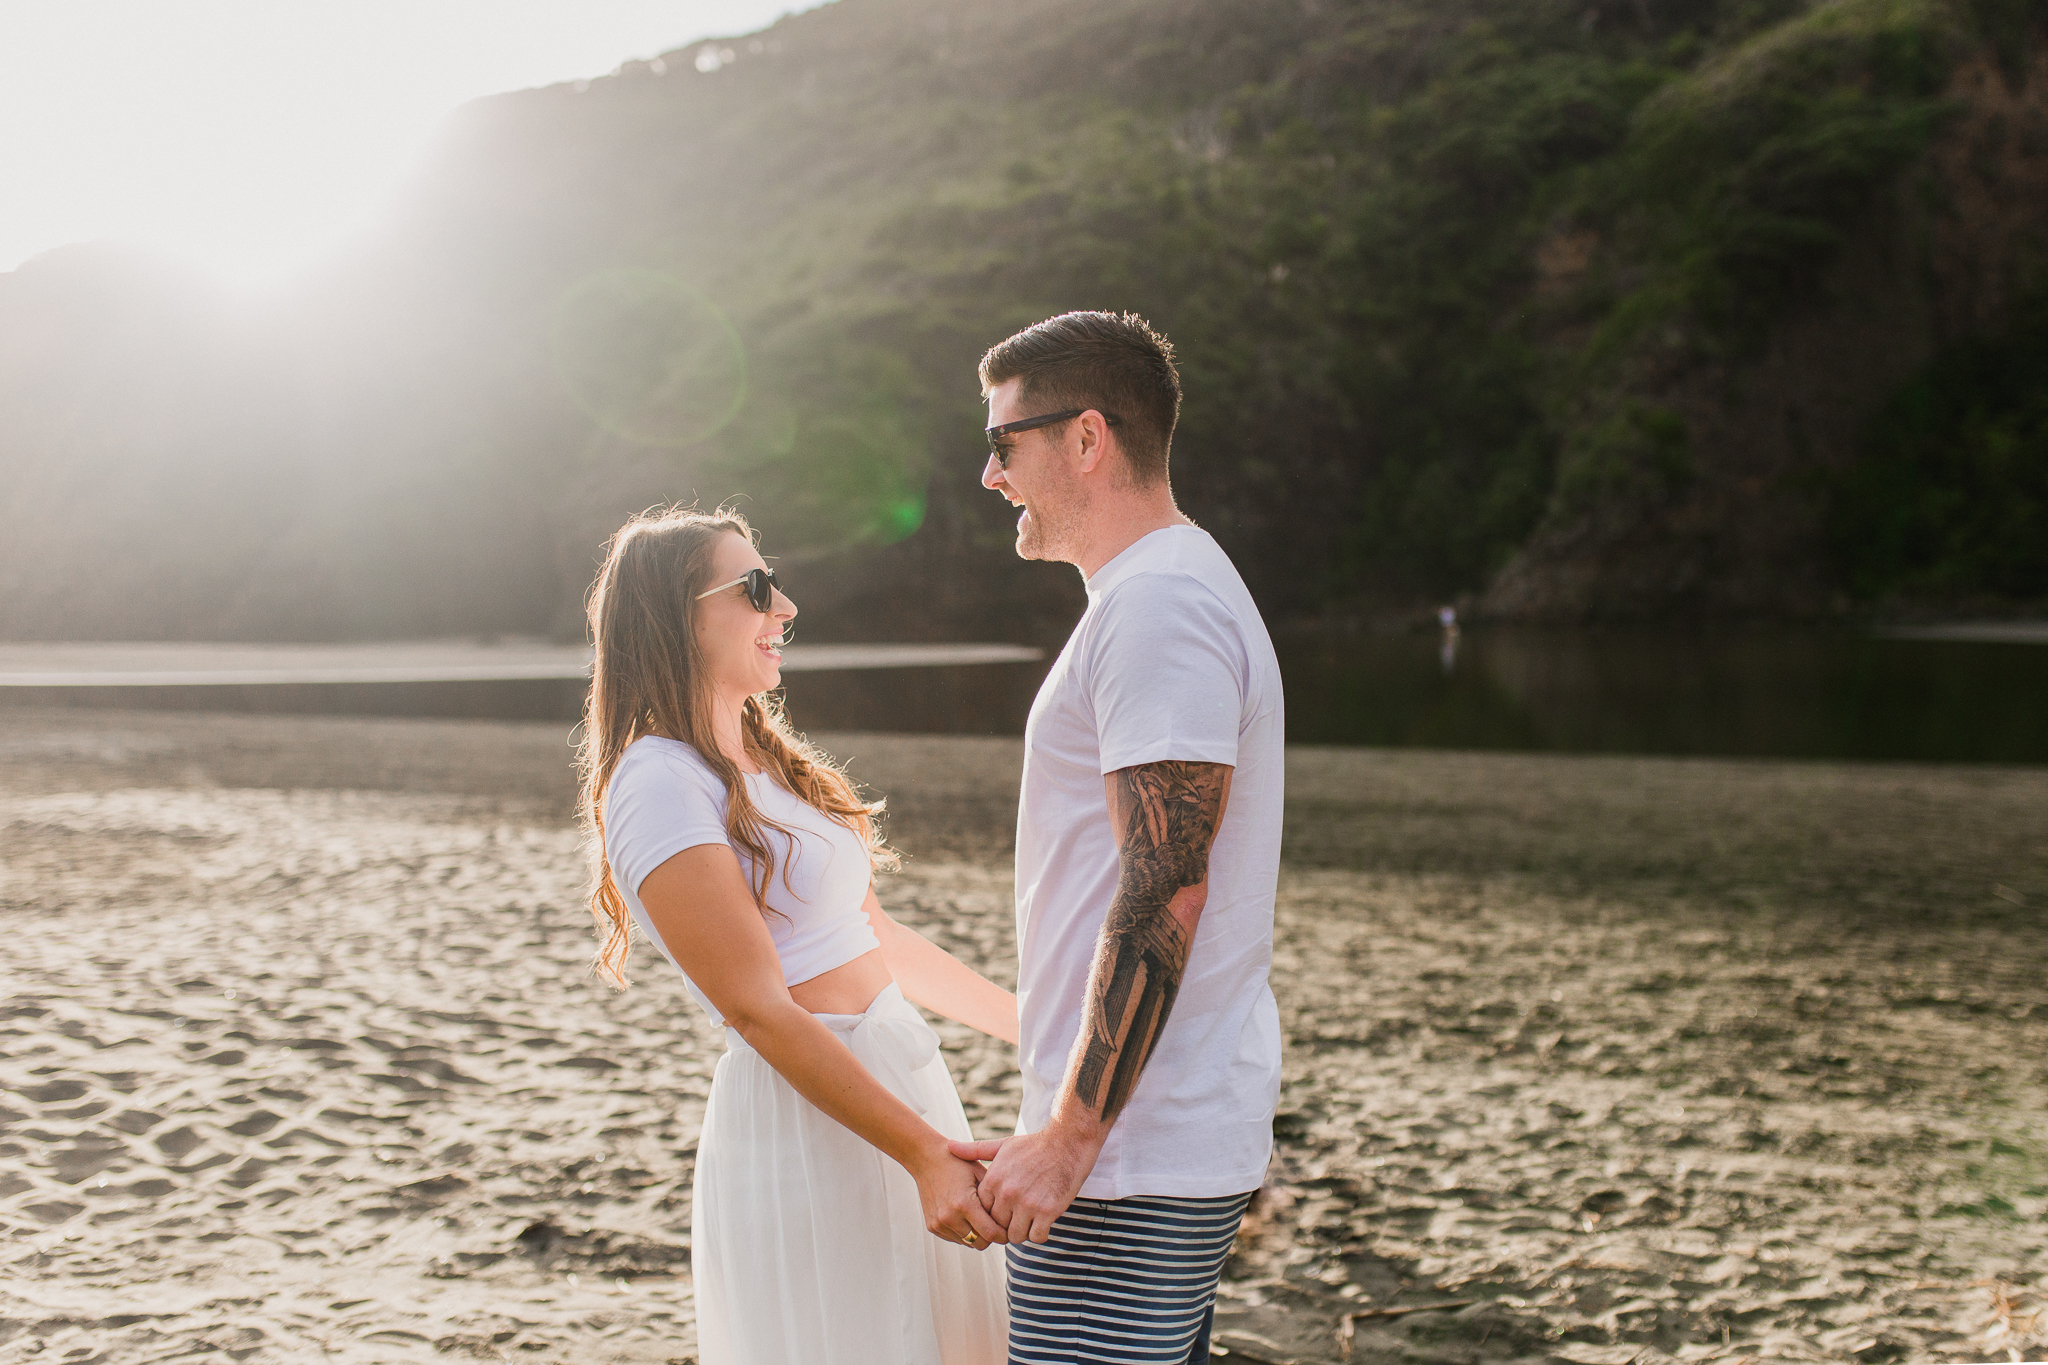 New Zealand - Auckland Wedding Photographer - Engagement - Bethells Beach - Alexandra & Lee - Love, the wild & epic tales